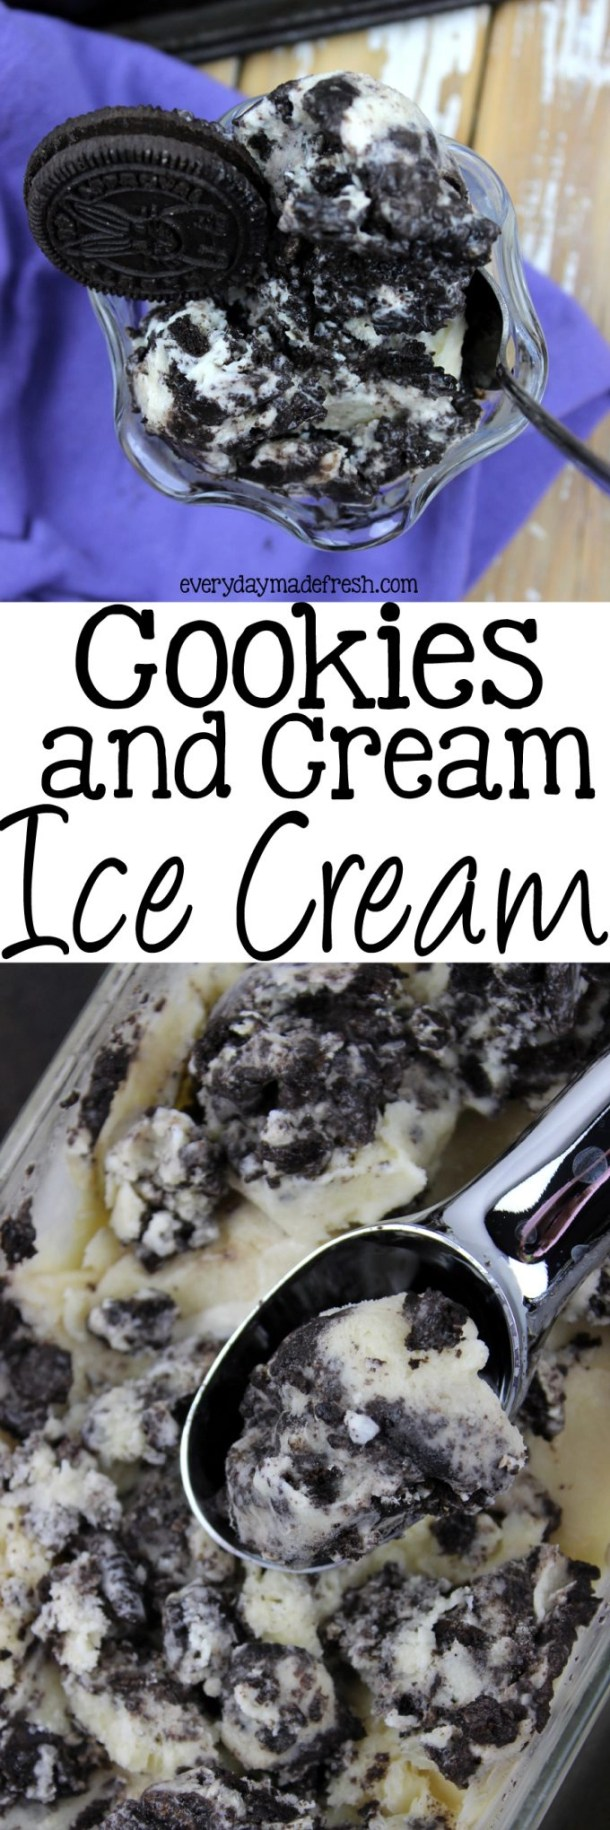 This Cookies and Cream Ice Cream is rich, smooth, and creamy! Let's not forget the most important part, it's decadent, and you're gonna love it! | EverydayMadeFresh.com